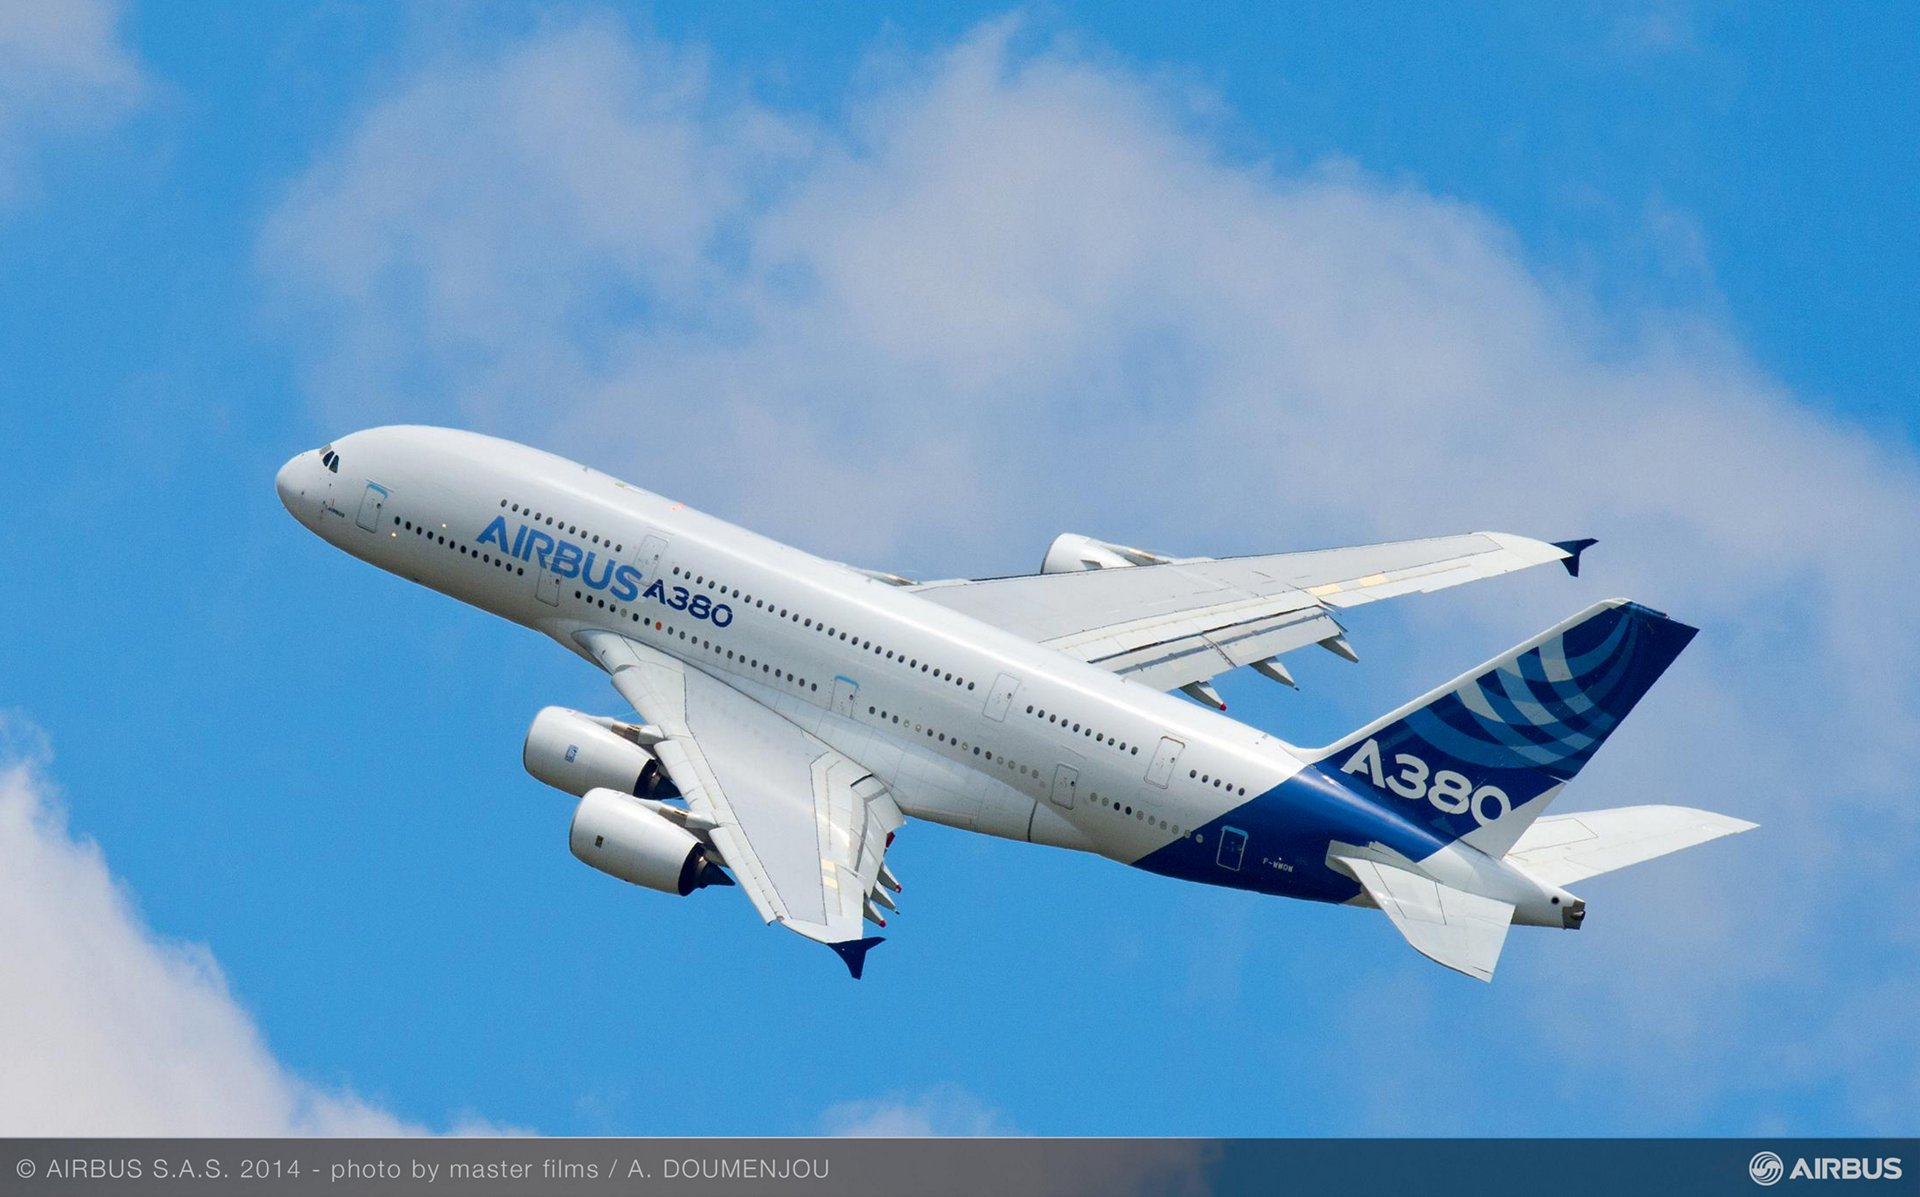 All Nippon Airways (ANA) will be the first Japanese carrier to operate Airbus' A380, based its order for three of these highly-efficient double-deck jetliners, plus three options .